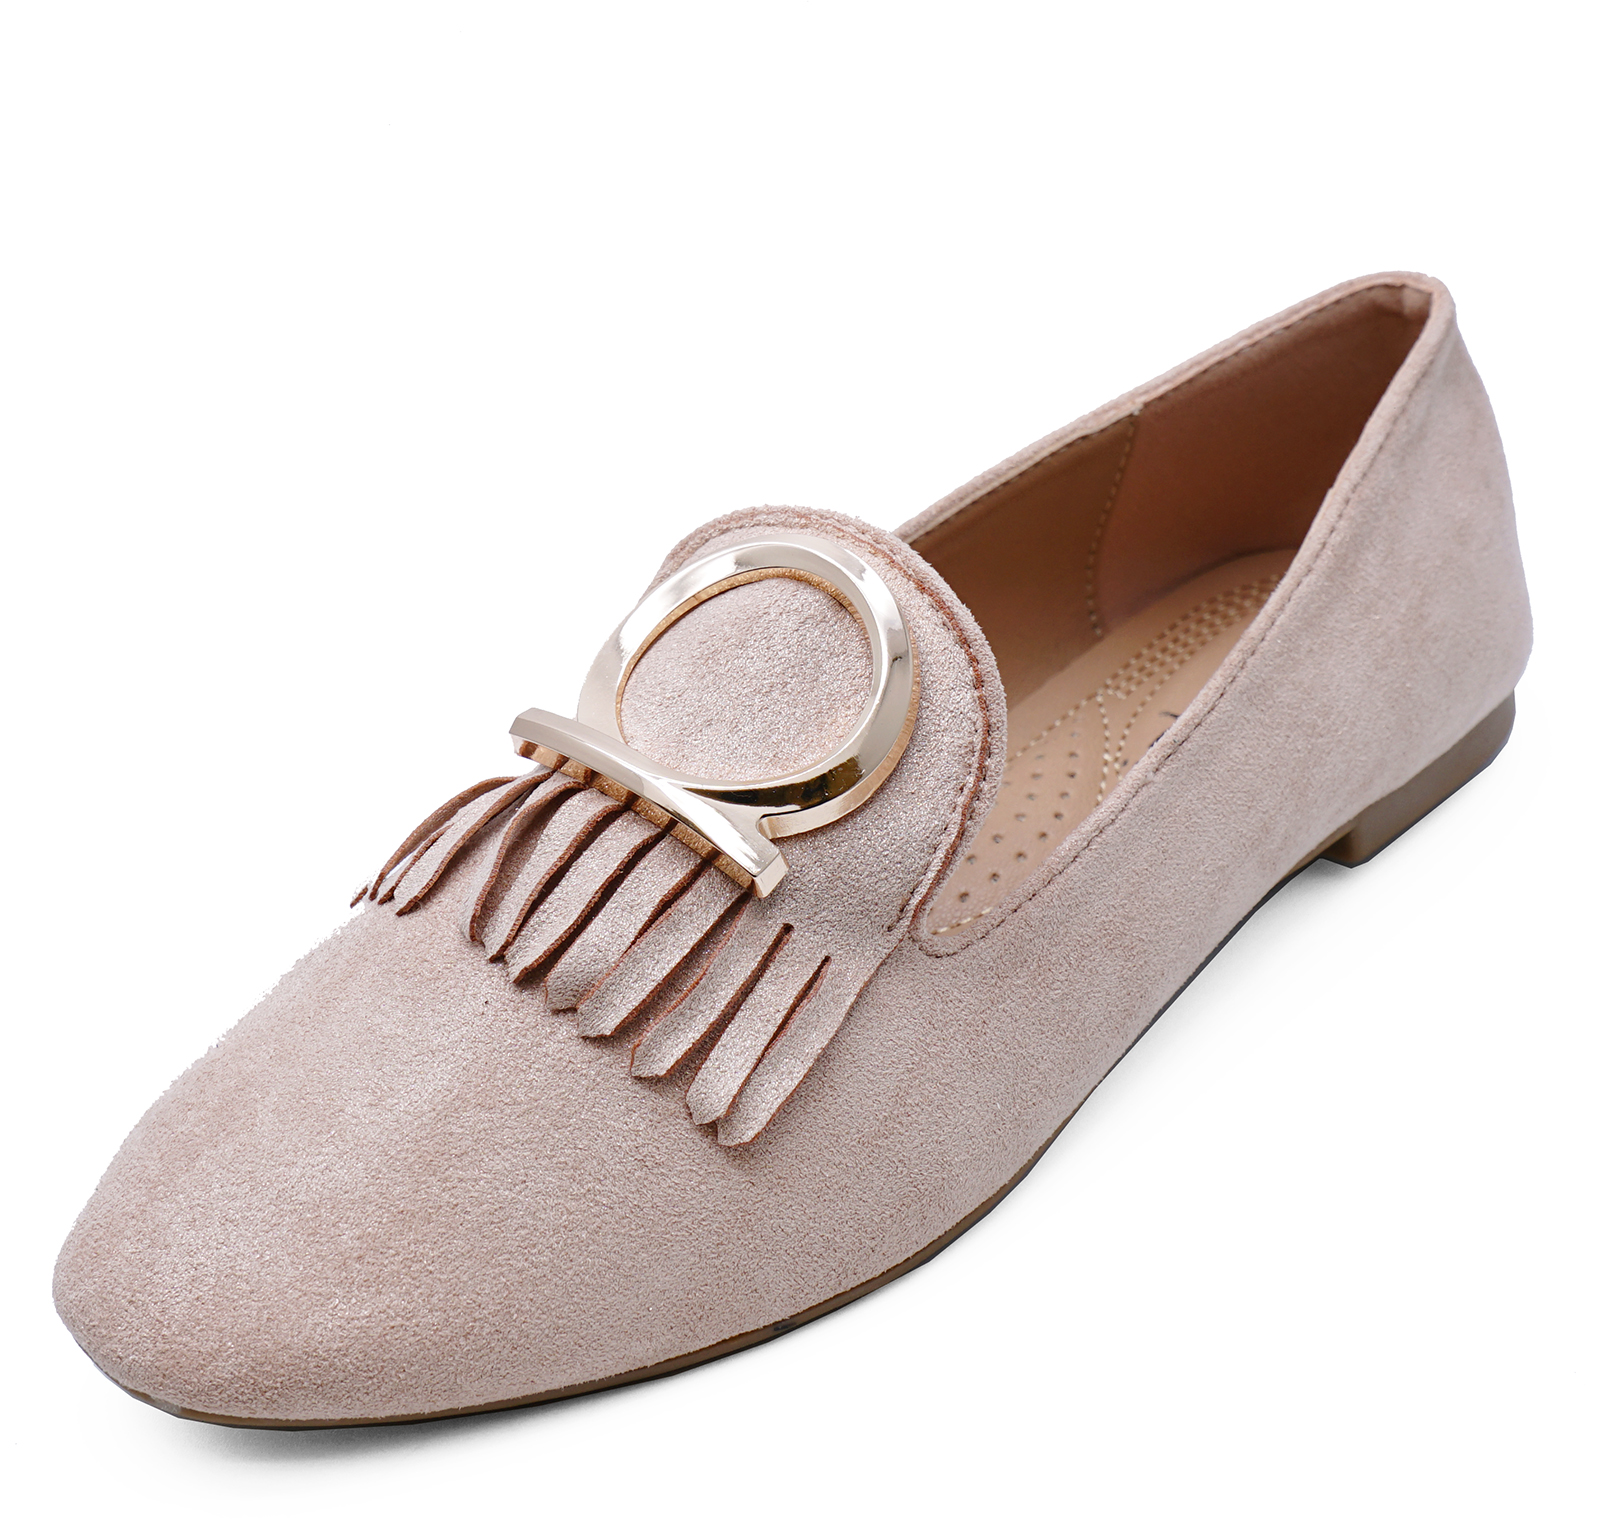 17349c5cd03 Sentinel LADIES BEIGE SLIP-ON FLAT LOAFERS CASUAL COMFY SMART WORK SHOES  PUMPS SIZES 3-